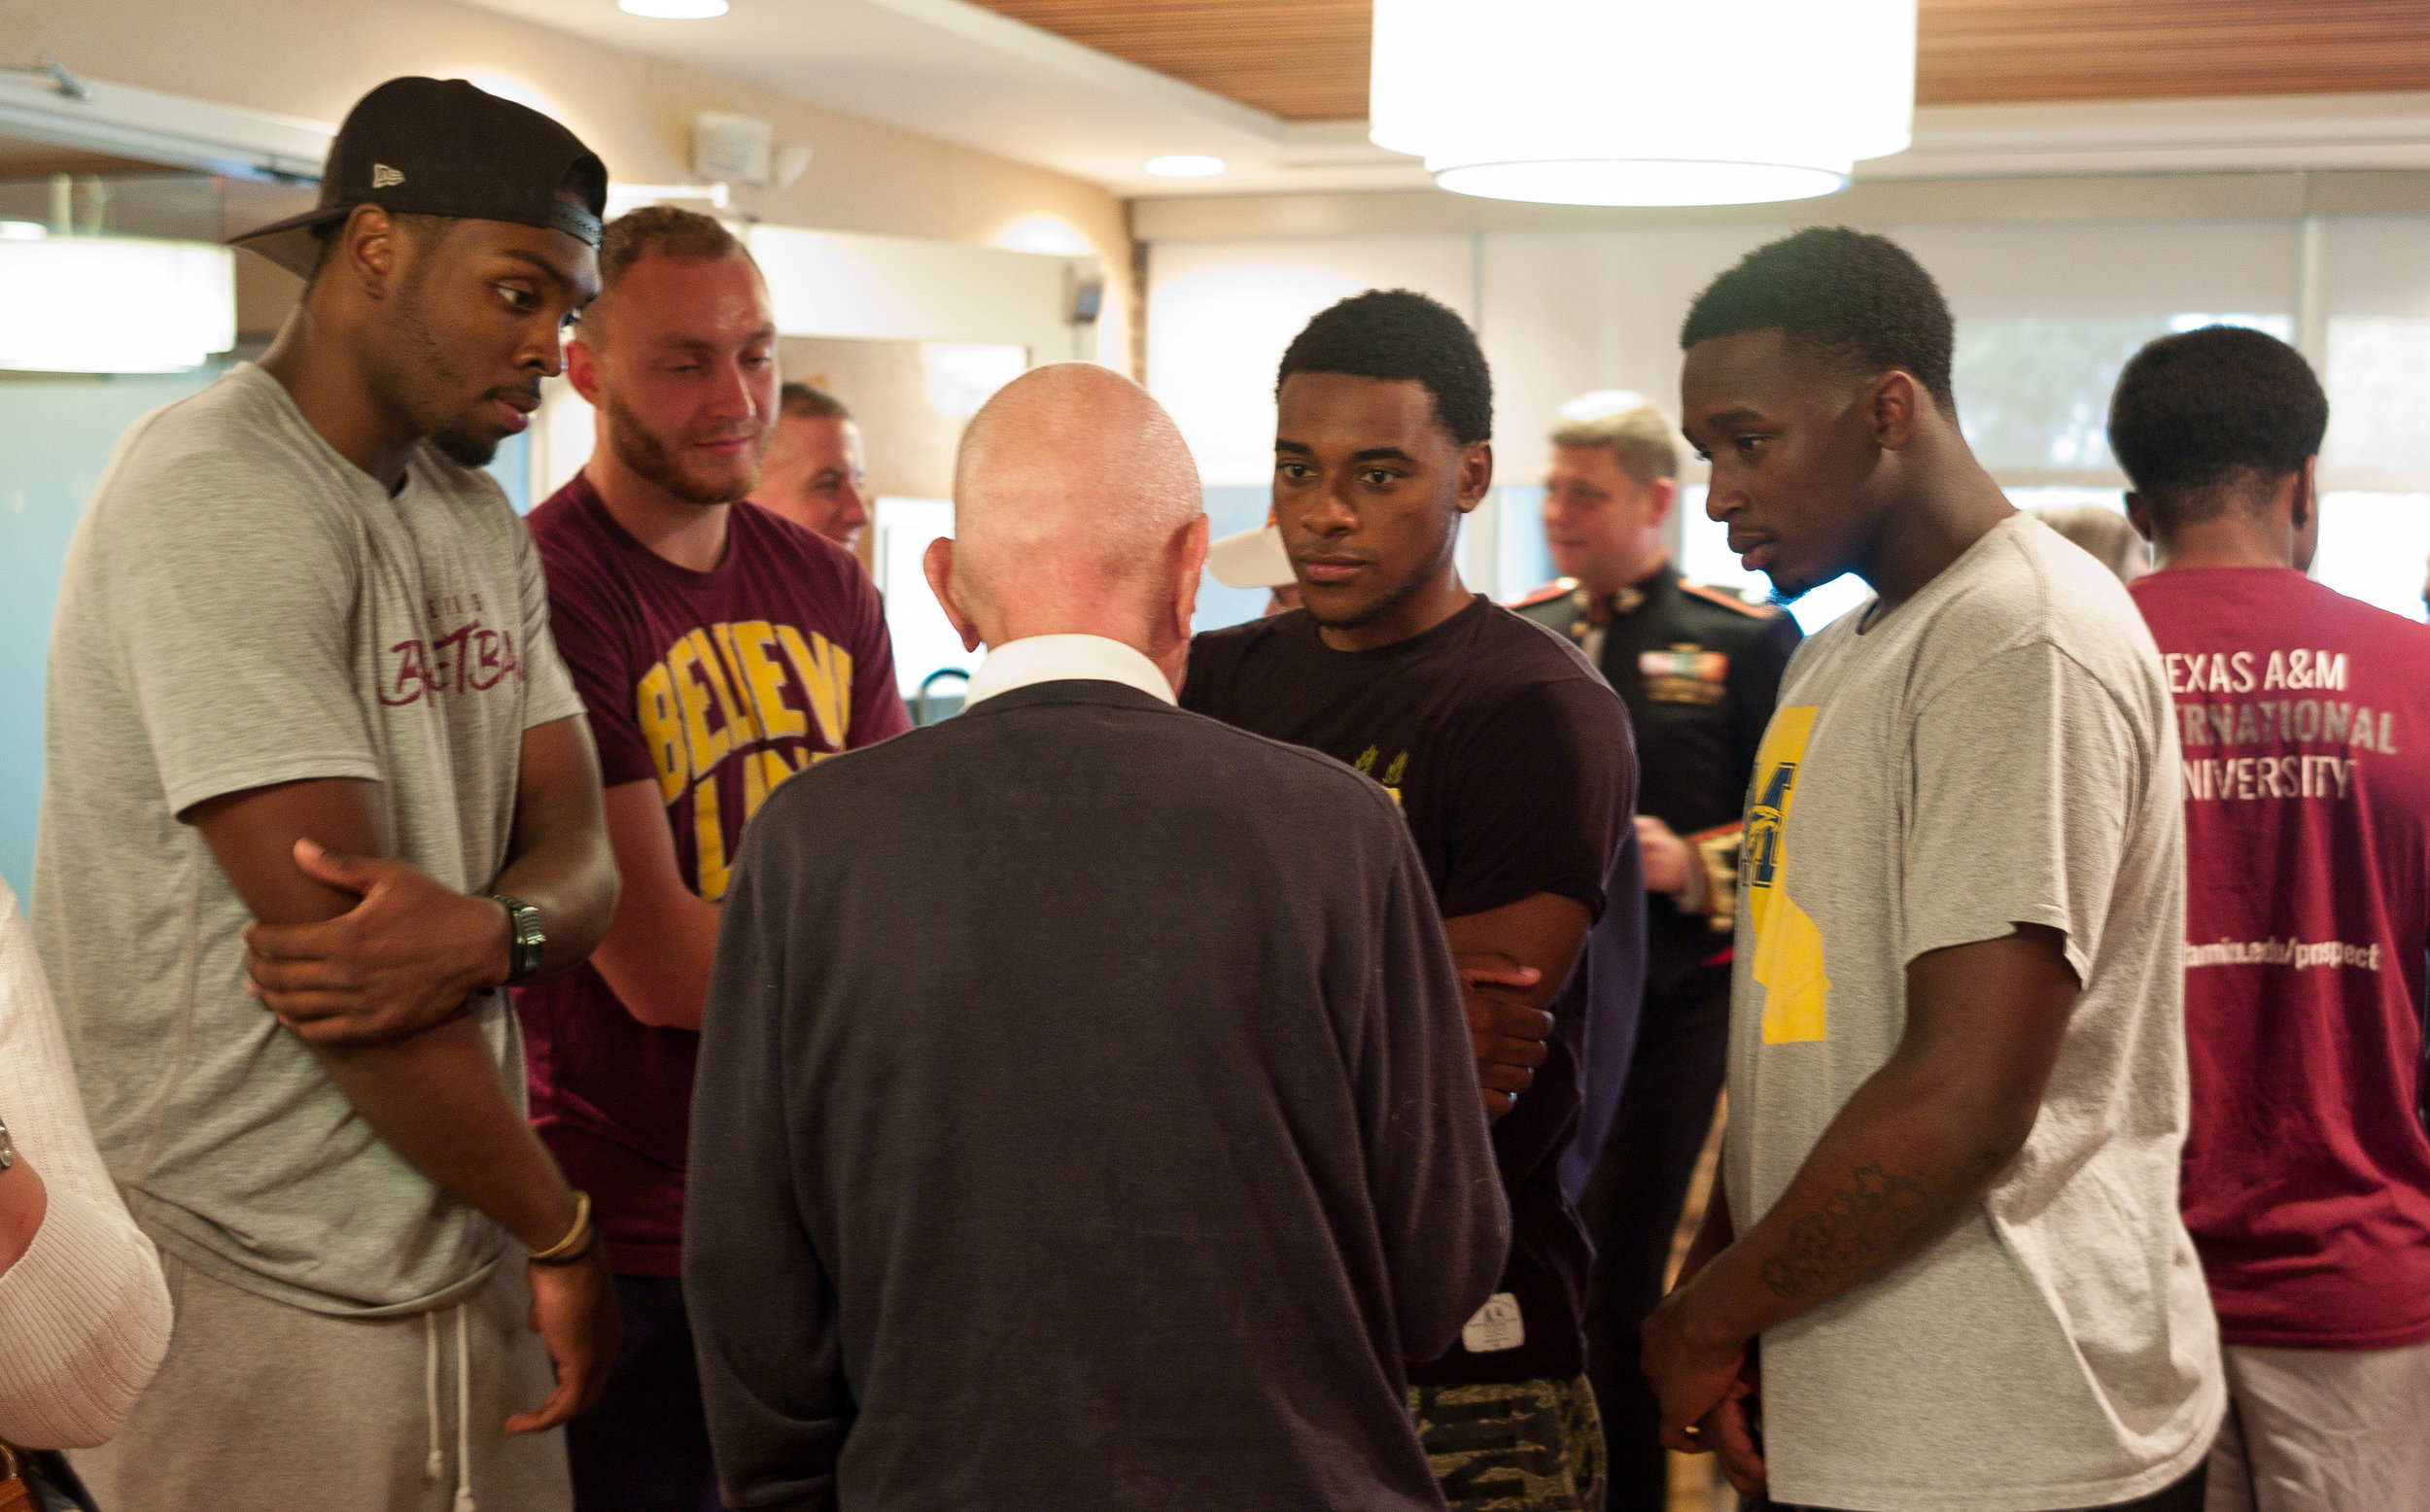 Jerry Yellin, P51 pilot, telling stories to a few fellows from the basketball team that was staying at our hotel.